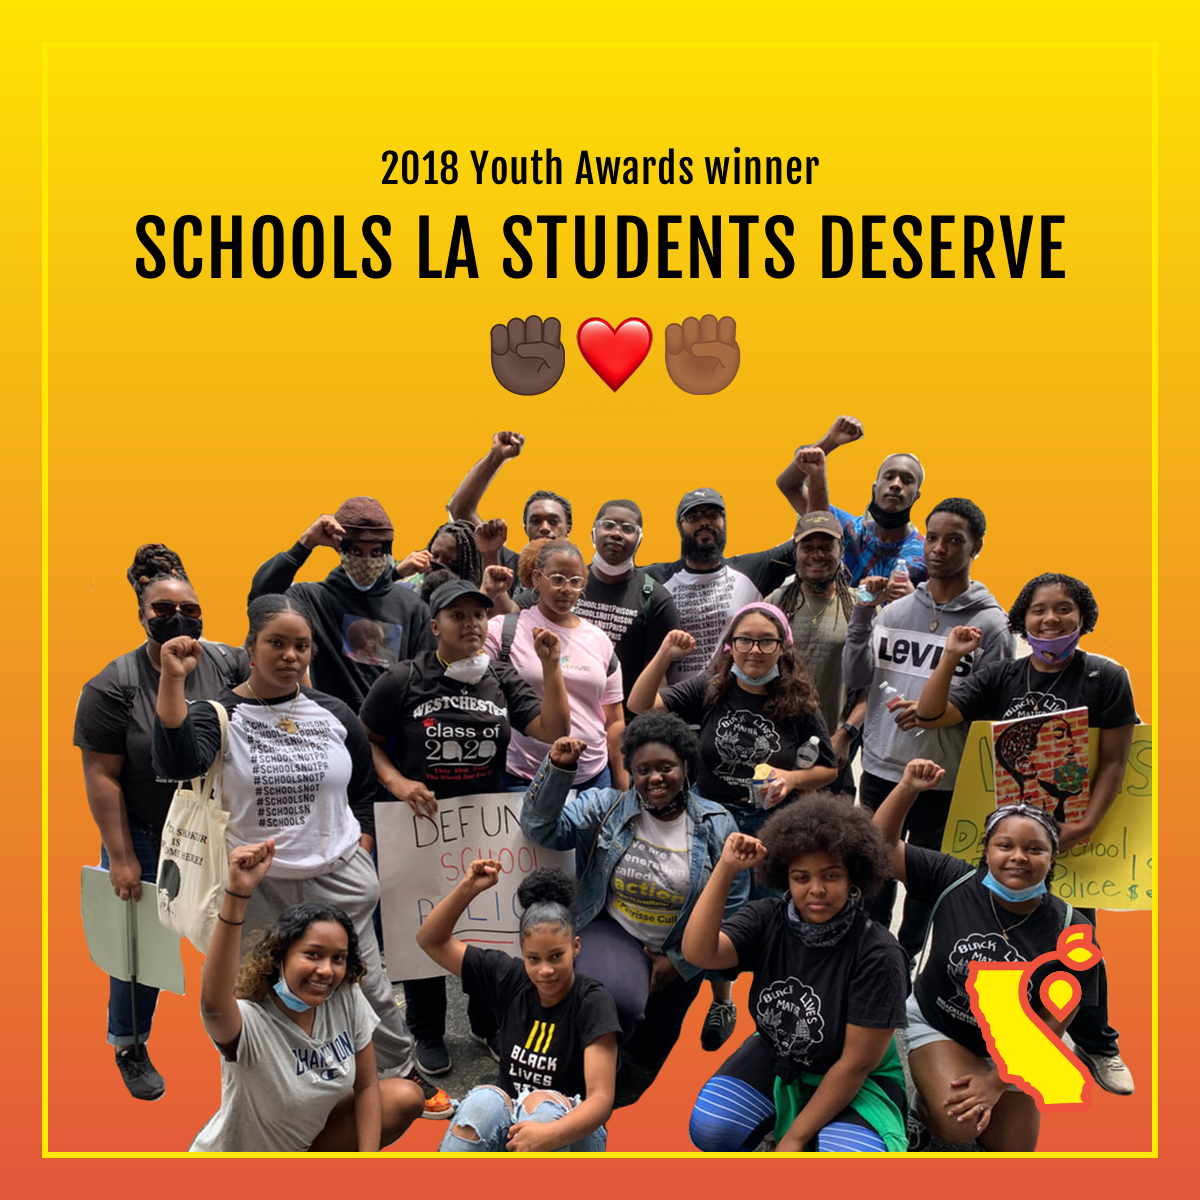 Since @LA_StudentsDsrv won a Youth Award in 2018, theyve been busy. 🎉The LA-based organization led the push (alongside @BLMLA) to defund the LA School Police Department by $25 million, securing a historic victory in the fight for Black lives in schools. THREAD 1/4